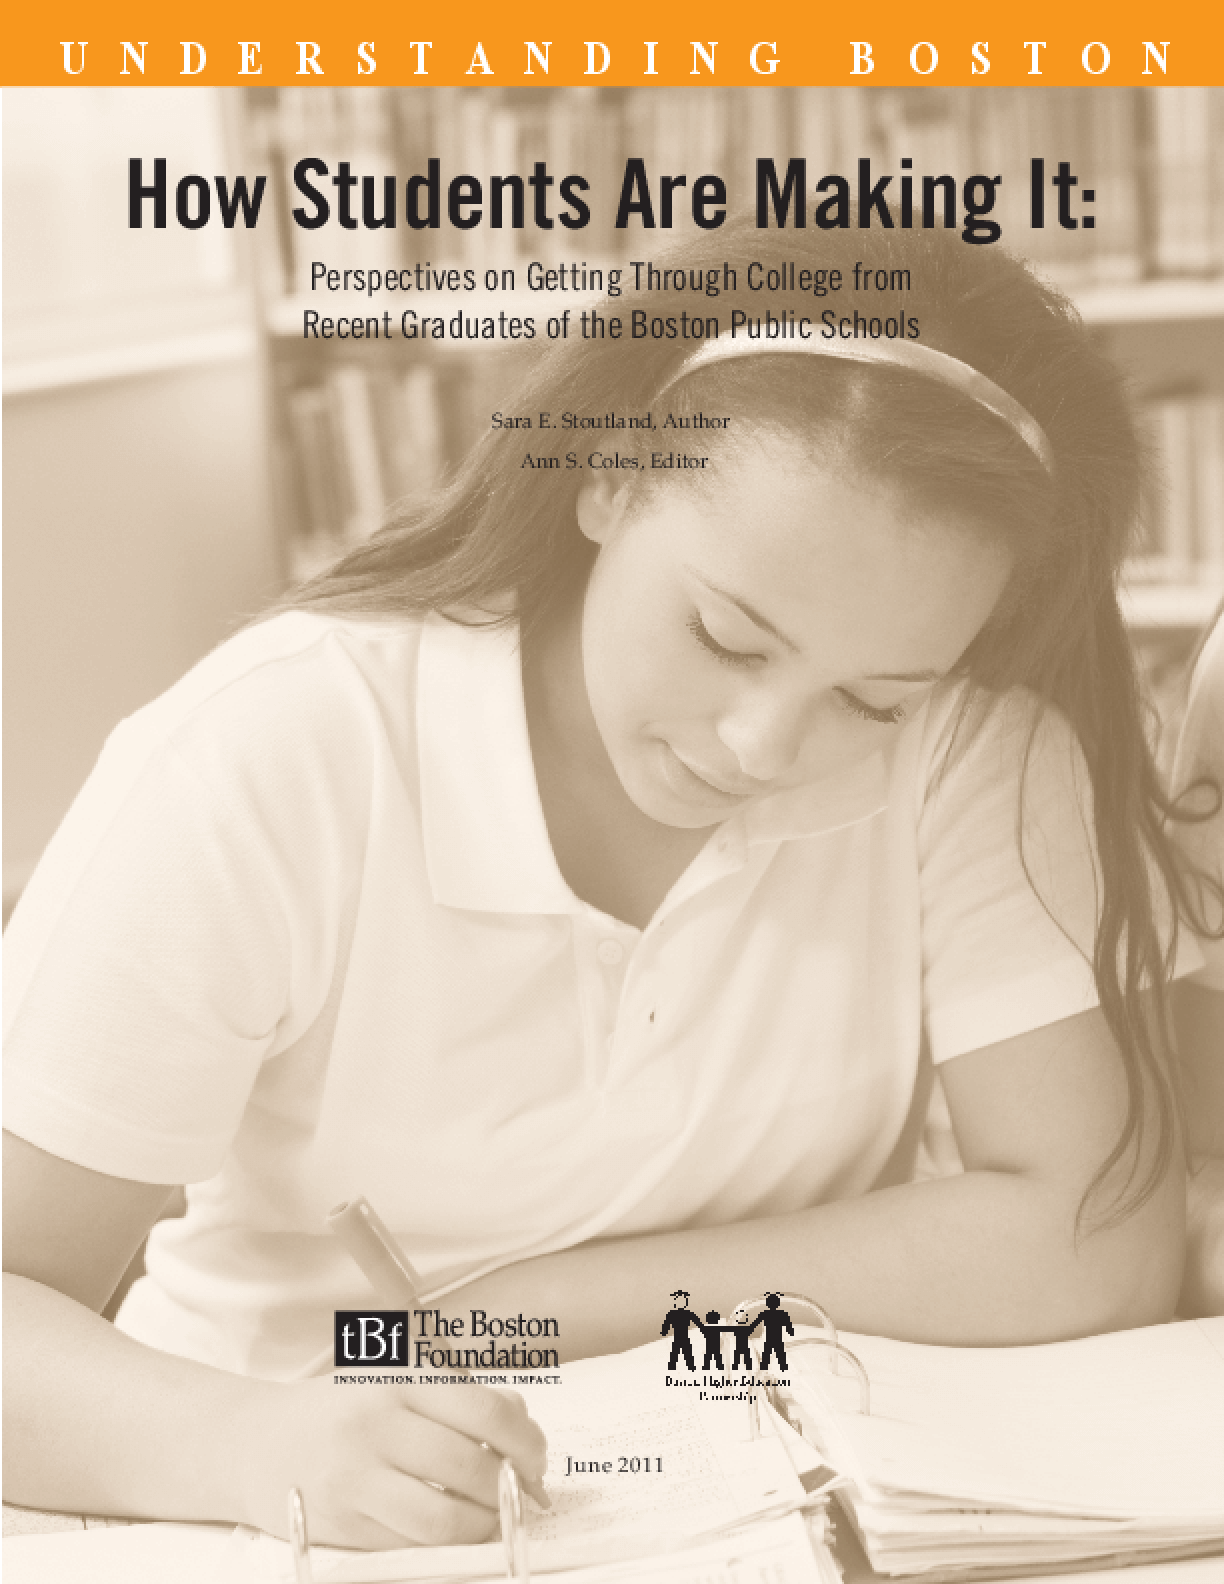 How Students Are Making It: Perspectives on Getting Through College From Recent Graduates of the Boston Public Schools